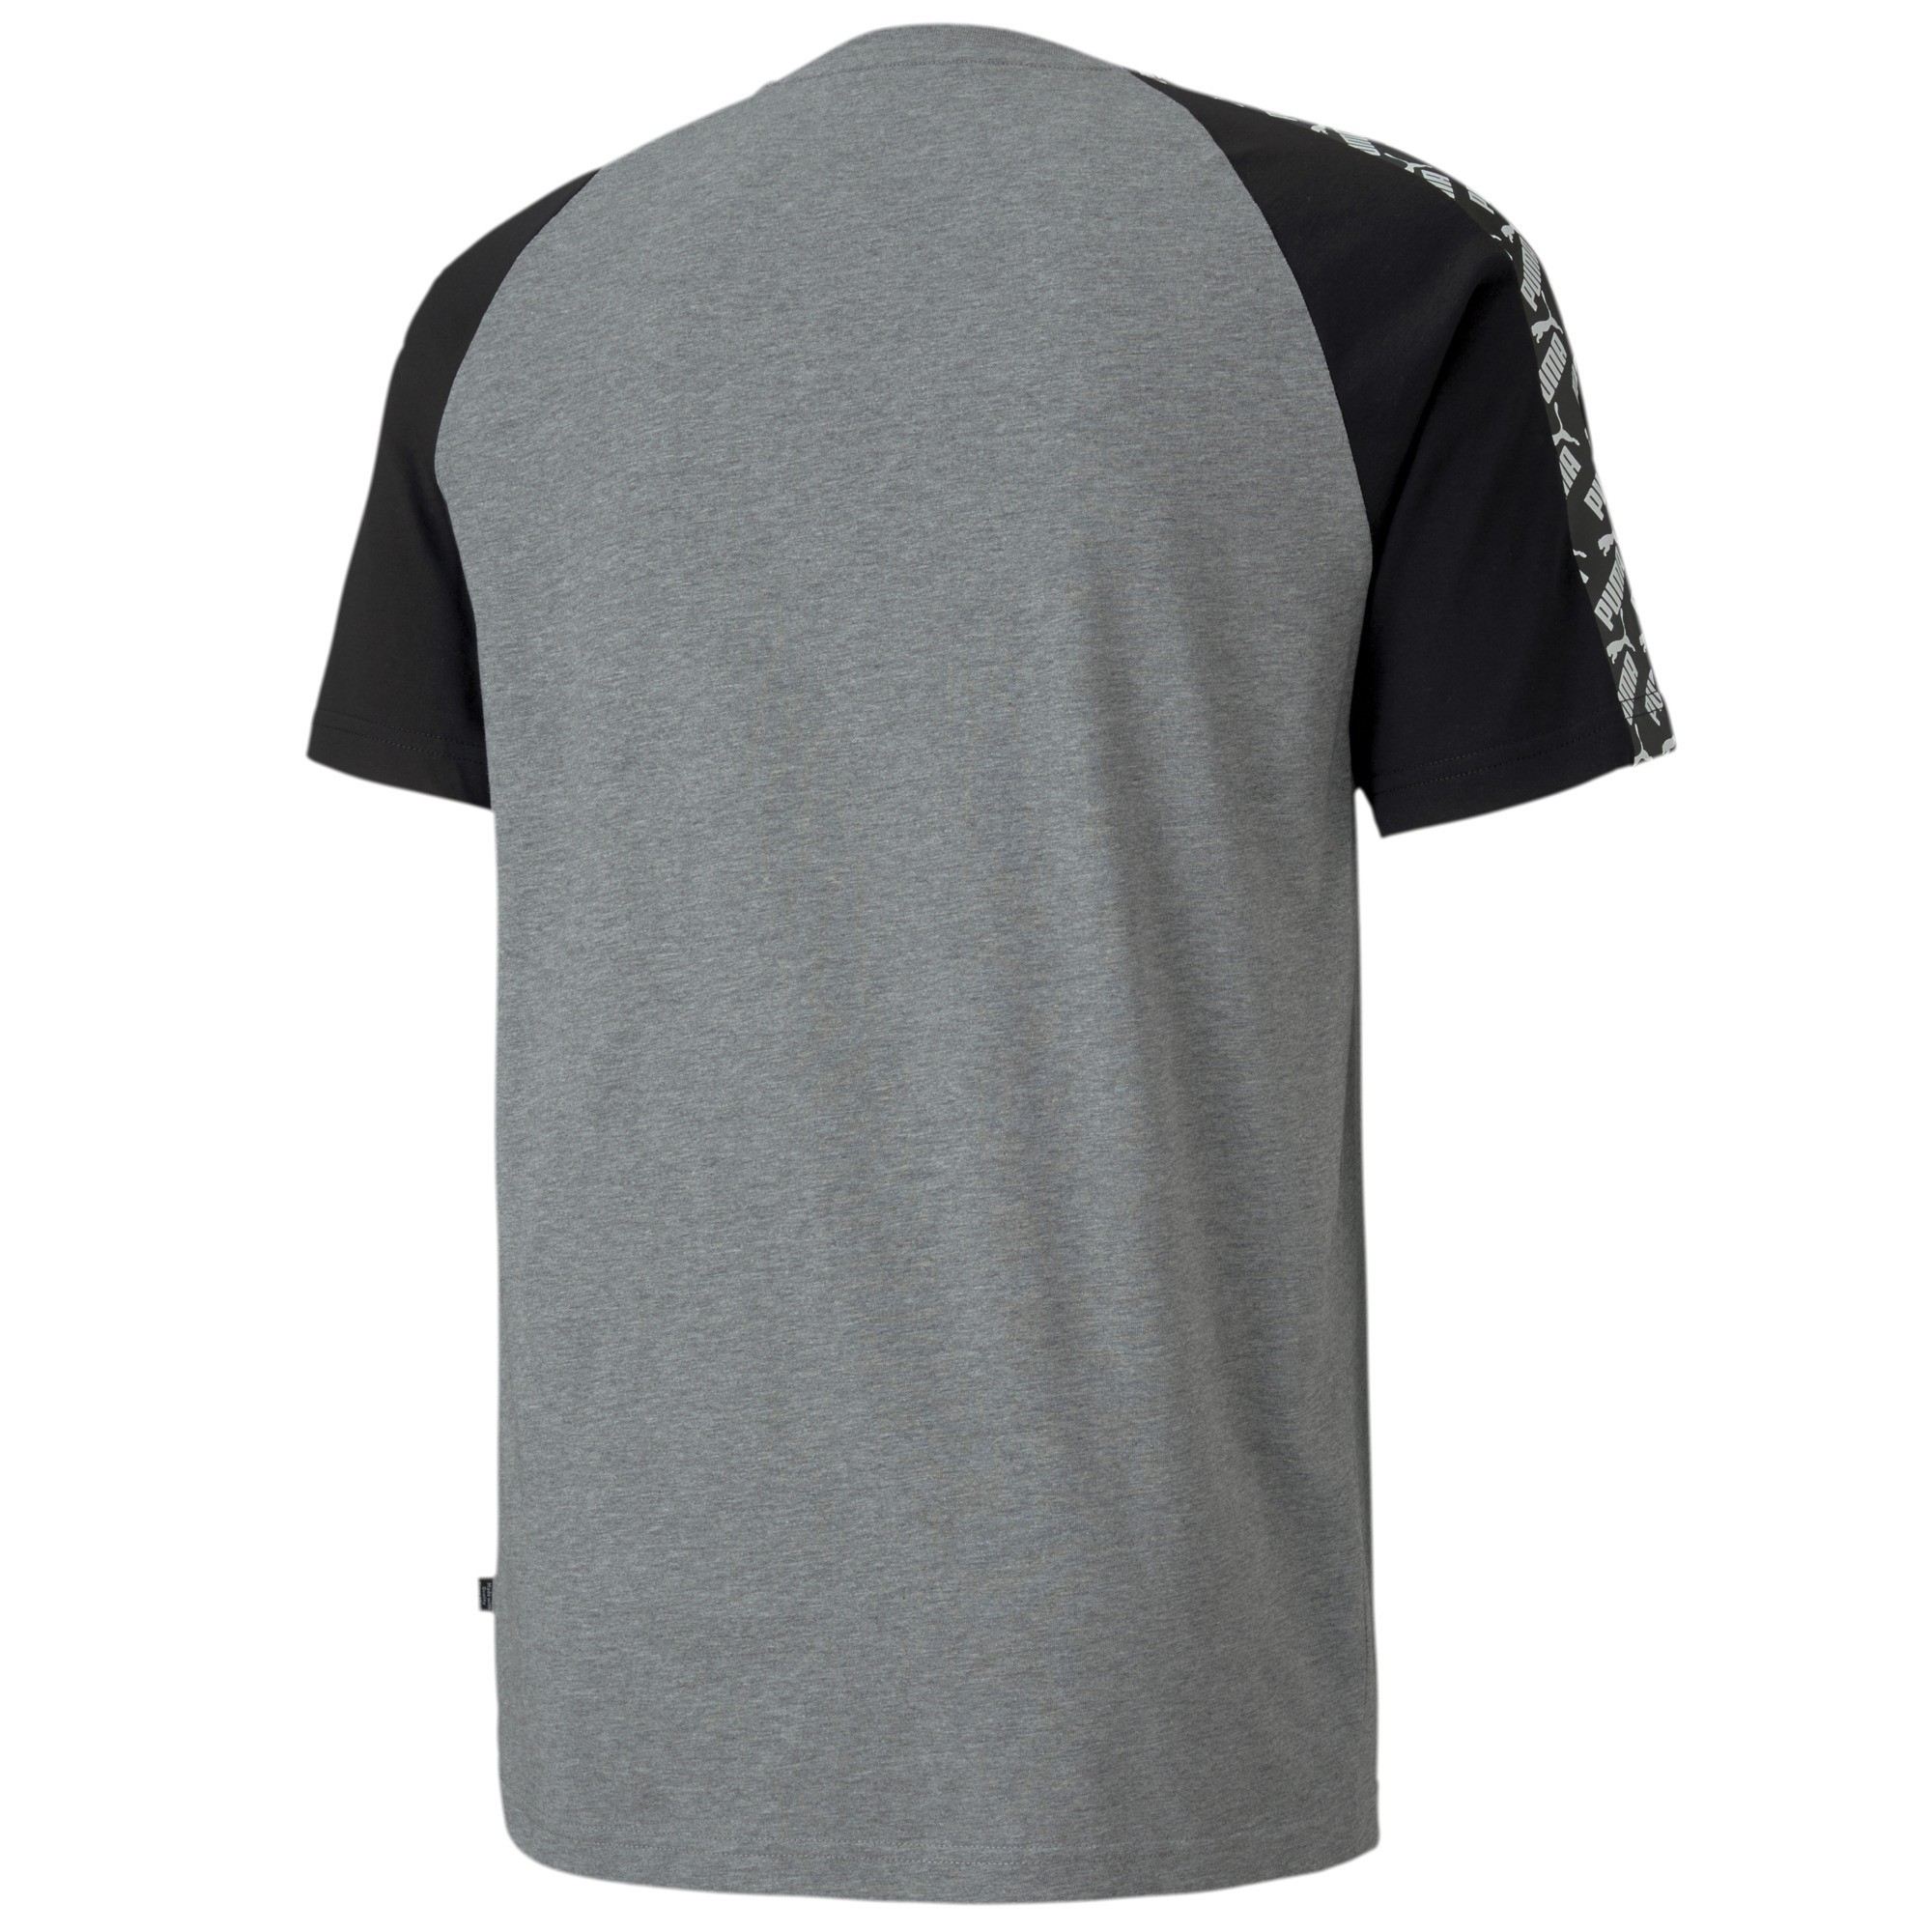 PUMA-Amplified-Men-039-s-Raglan-Tee-Men-Tee-Basics thumbnail 7